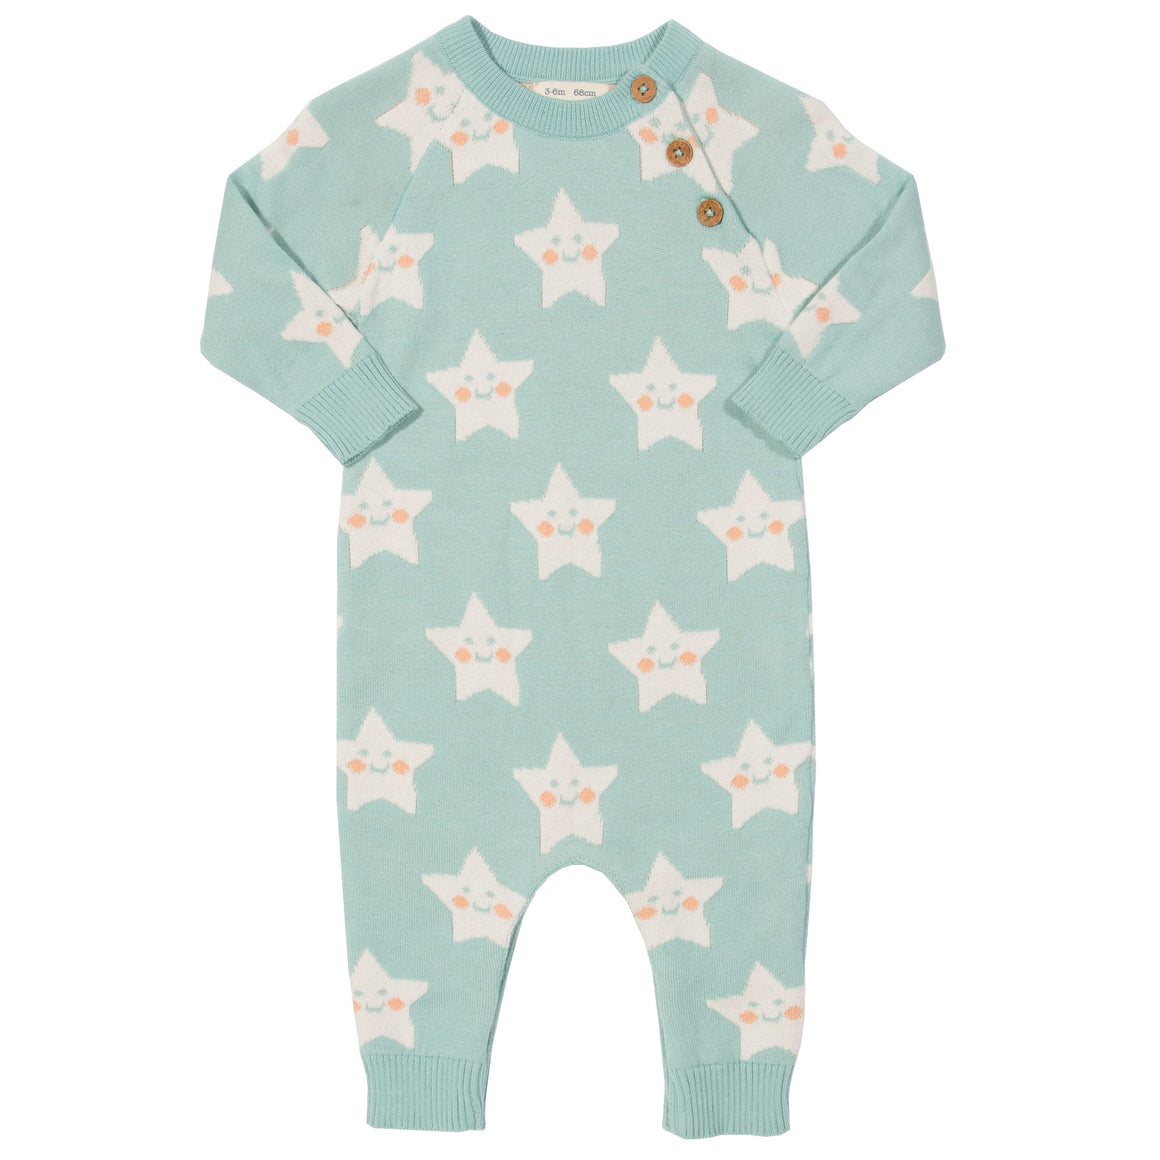 Super star romper